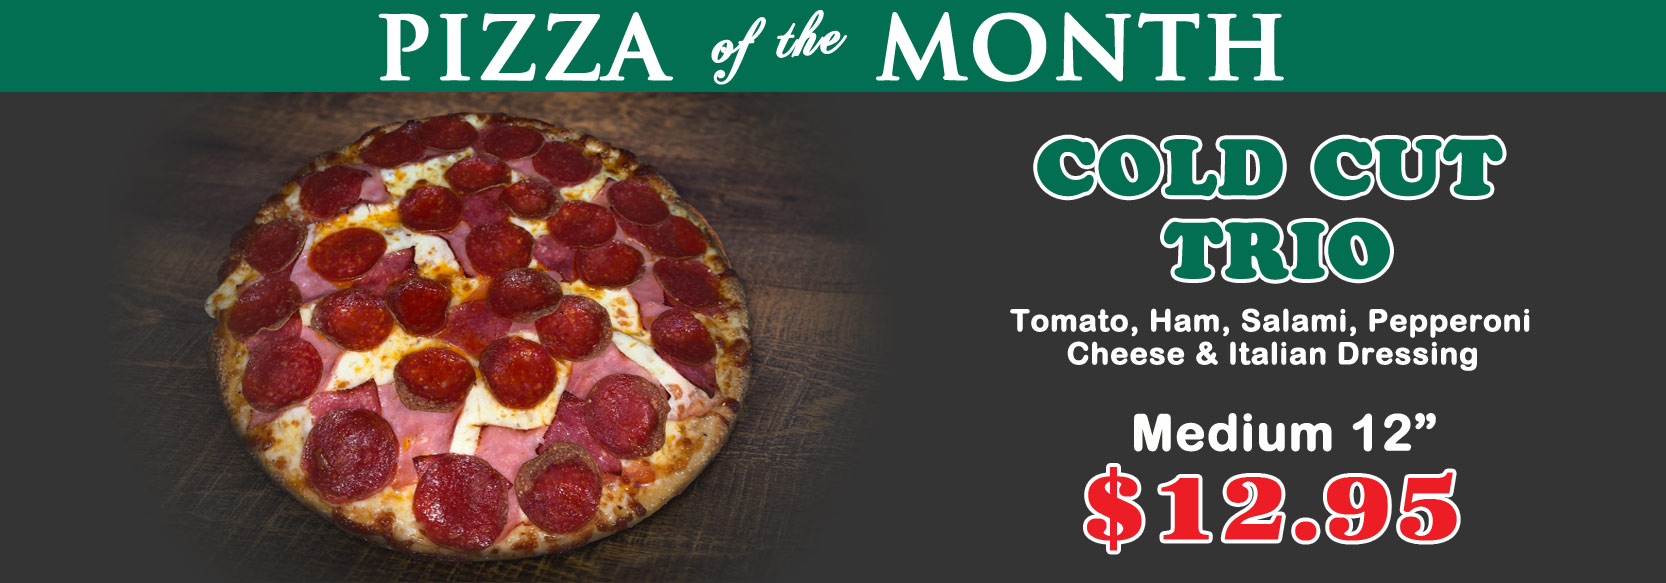 March 2019 Pizza of the Month - Cold Cut Trio Pizza